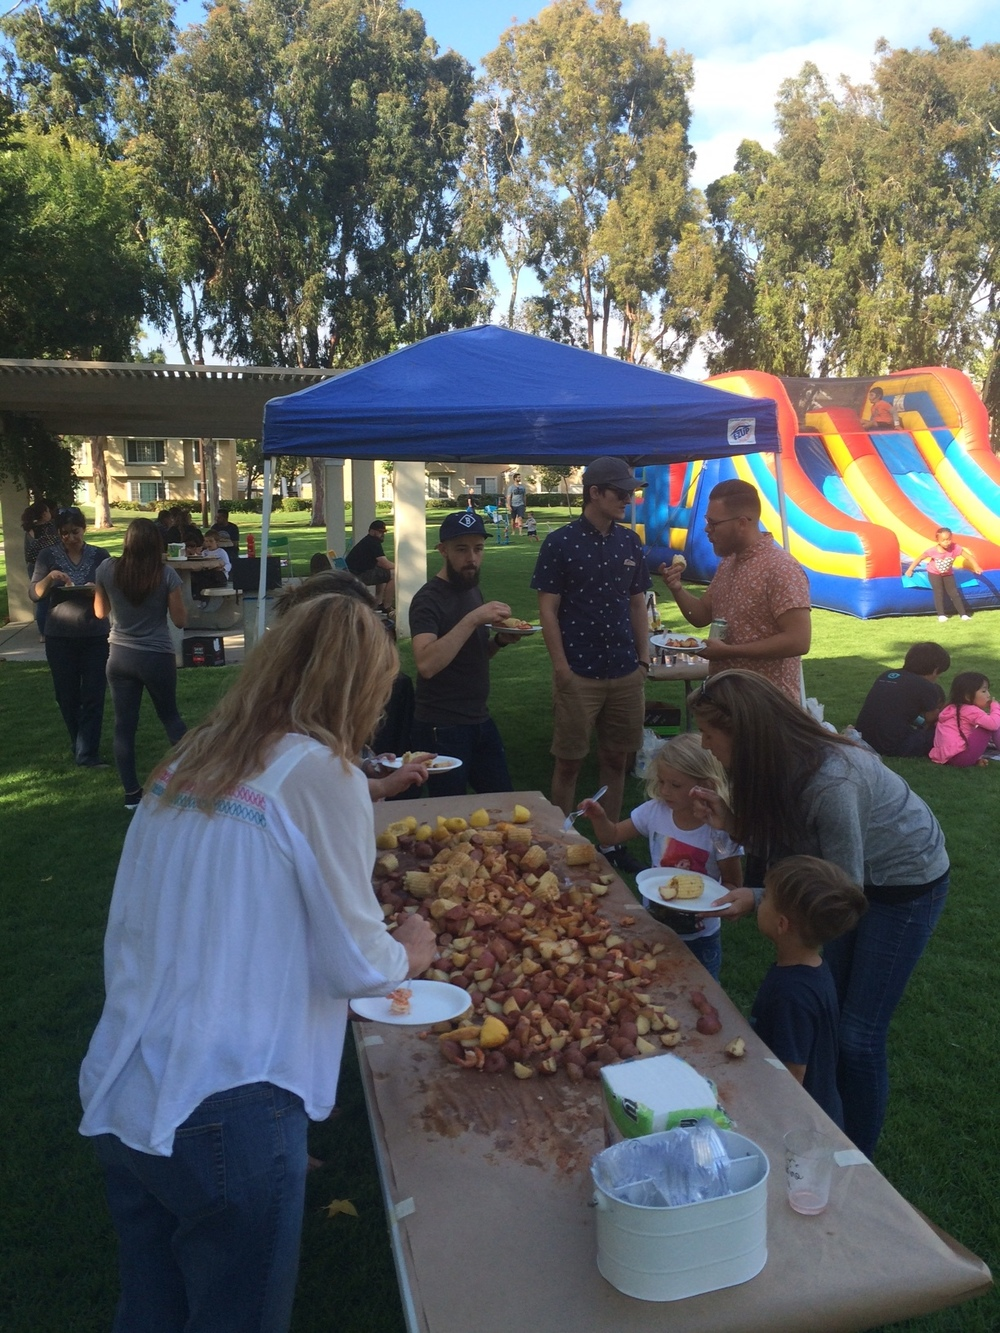 Irvine CG hosting their 2nd Annual Low Country Boil